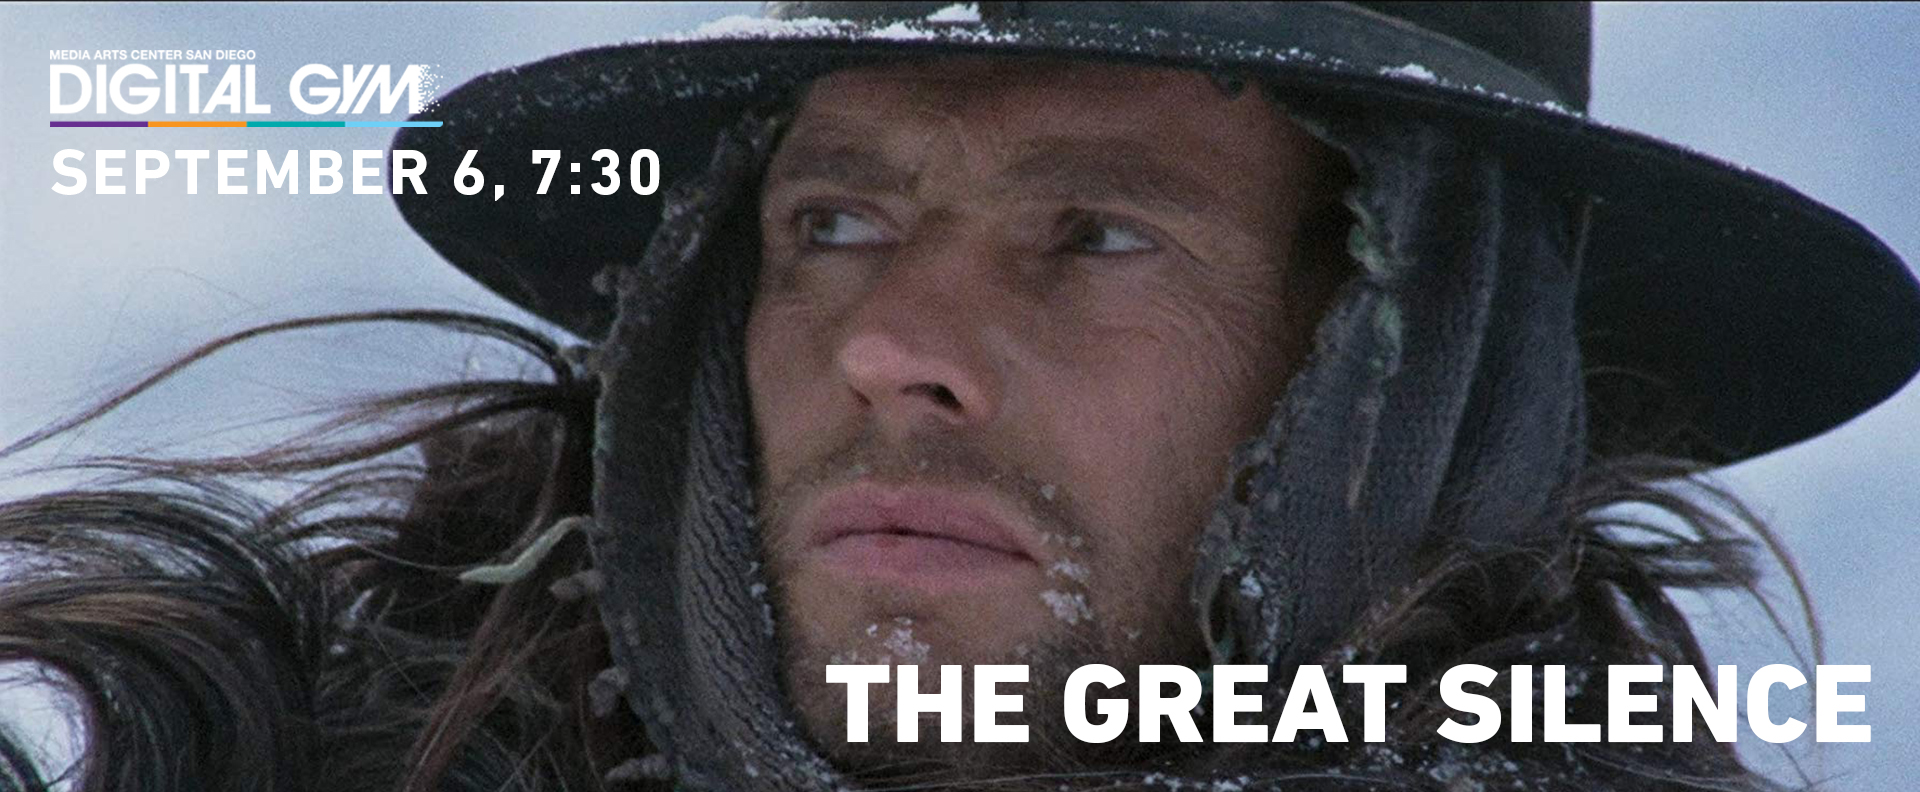 Film Geeks SD Present: The Great Silence (September 6)